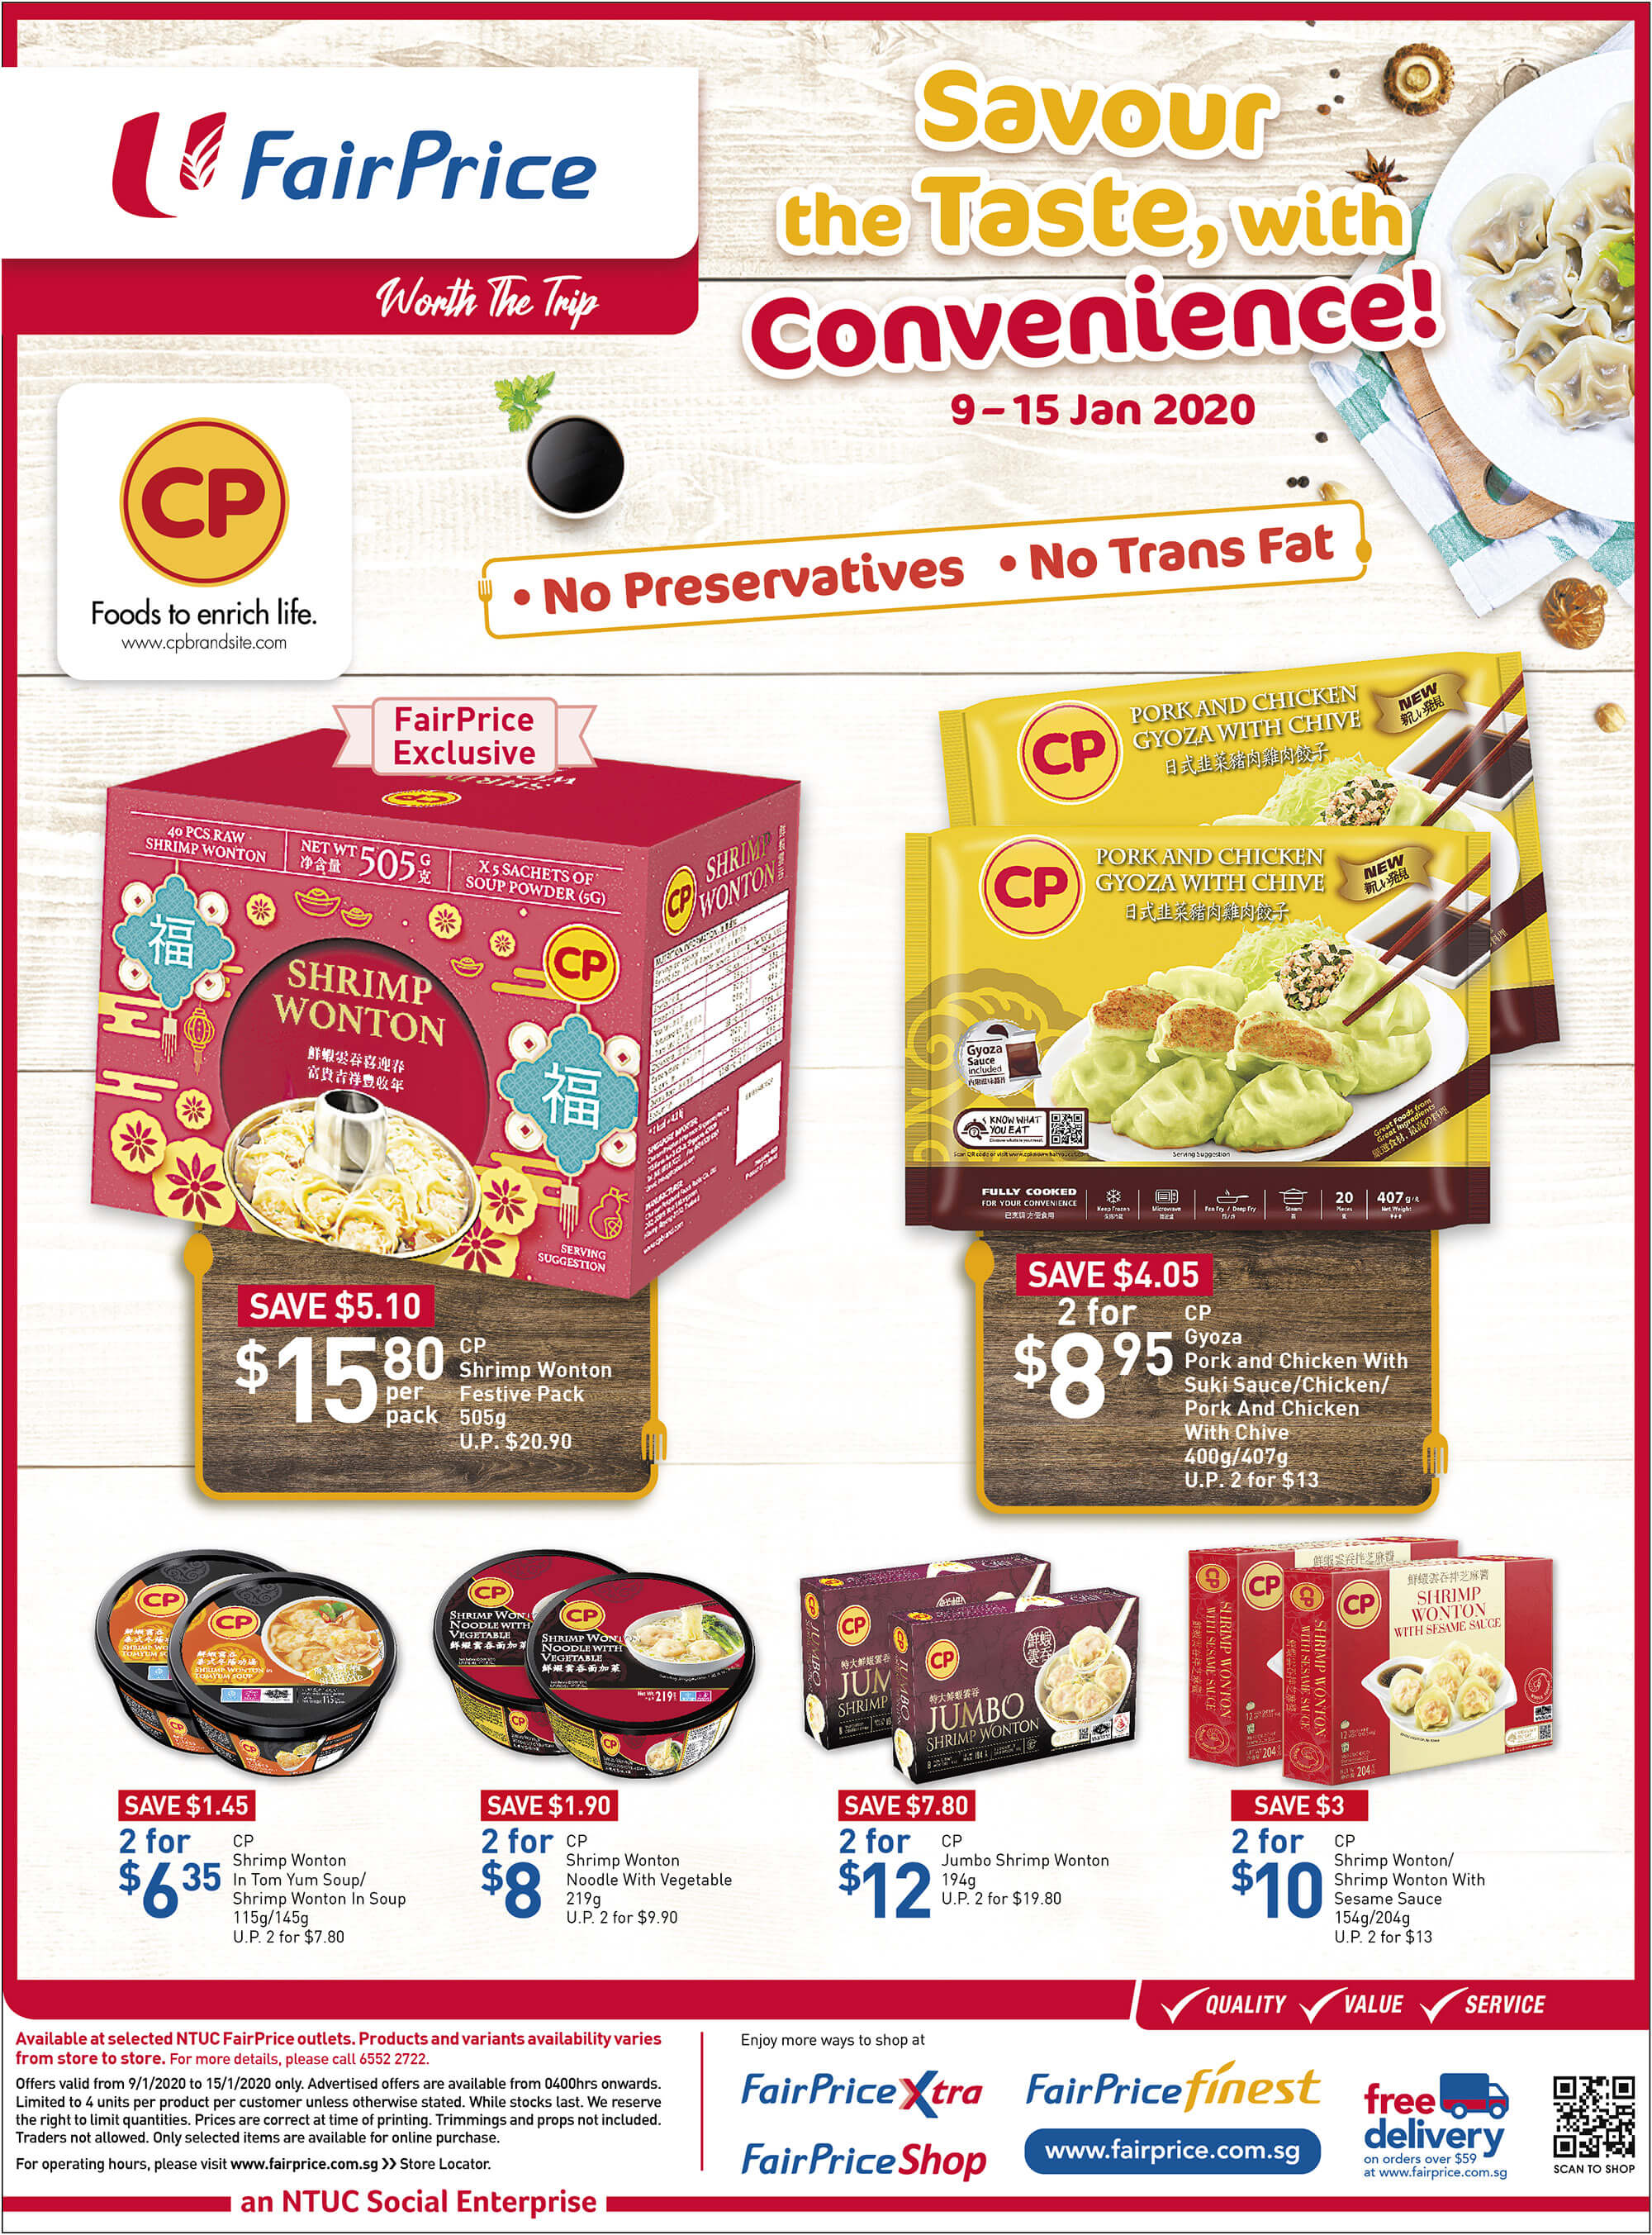 NTUC FairPrice SG Your Weekly Saver Promotions 9-15 Jan 2020 | Why Not Deals 4 & Promotions